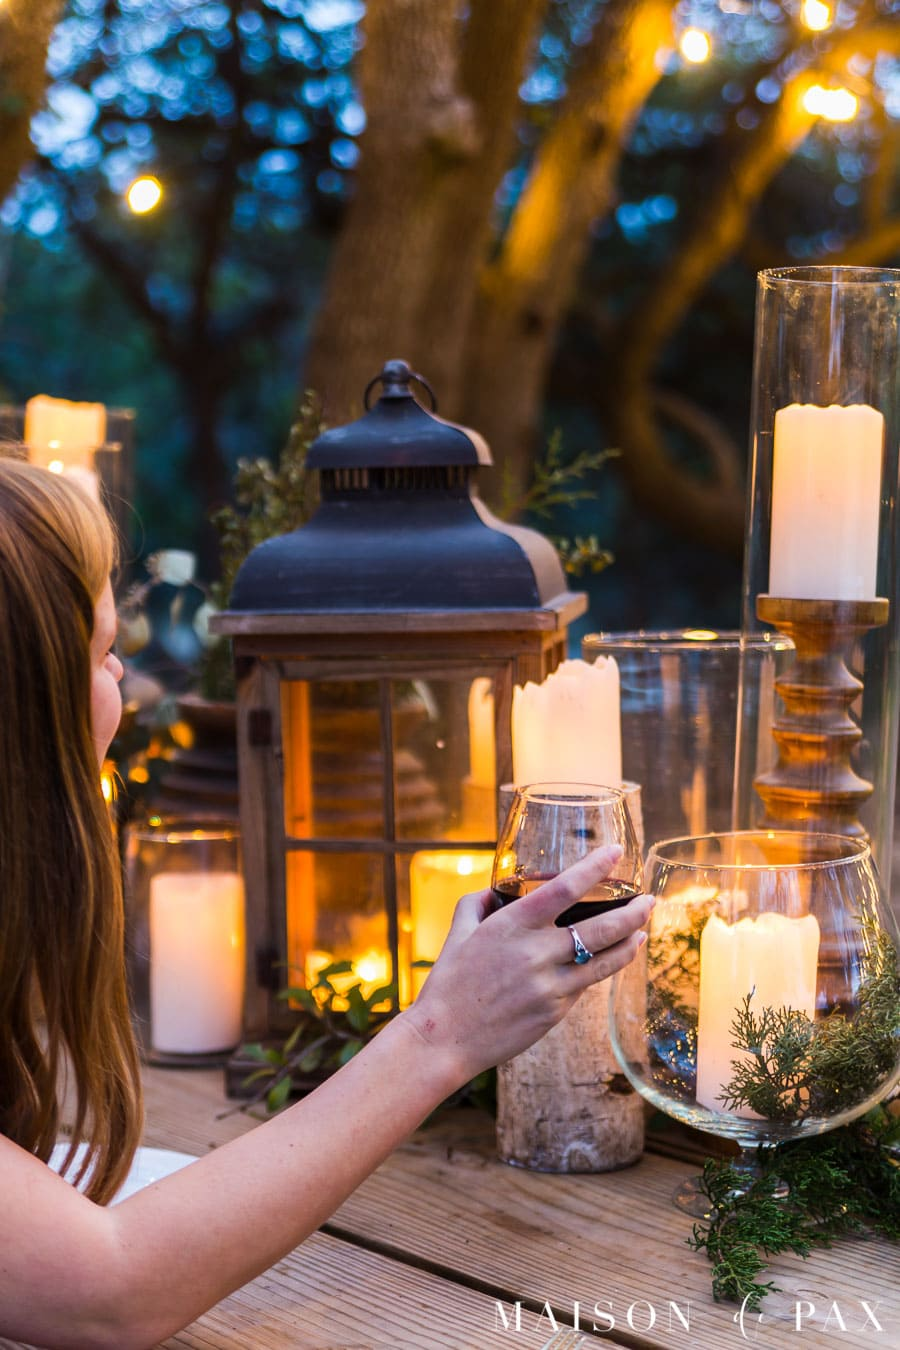 outdoor dinner party under the stars and string lights | maison de pax